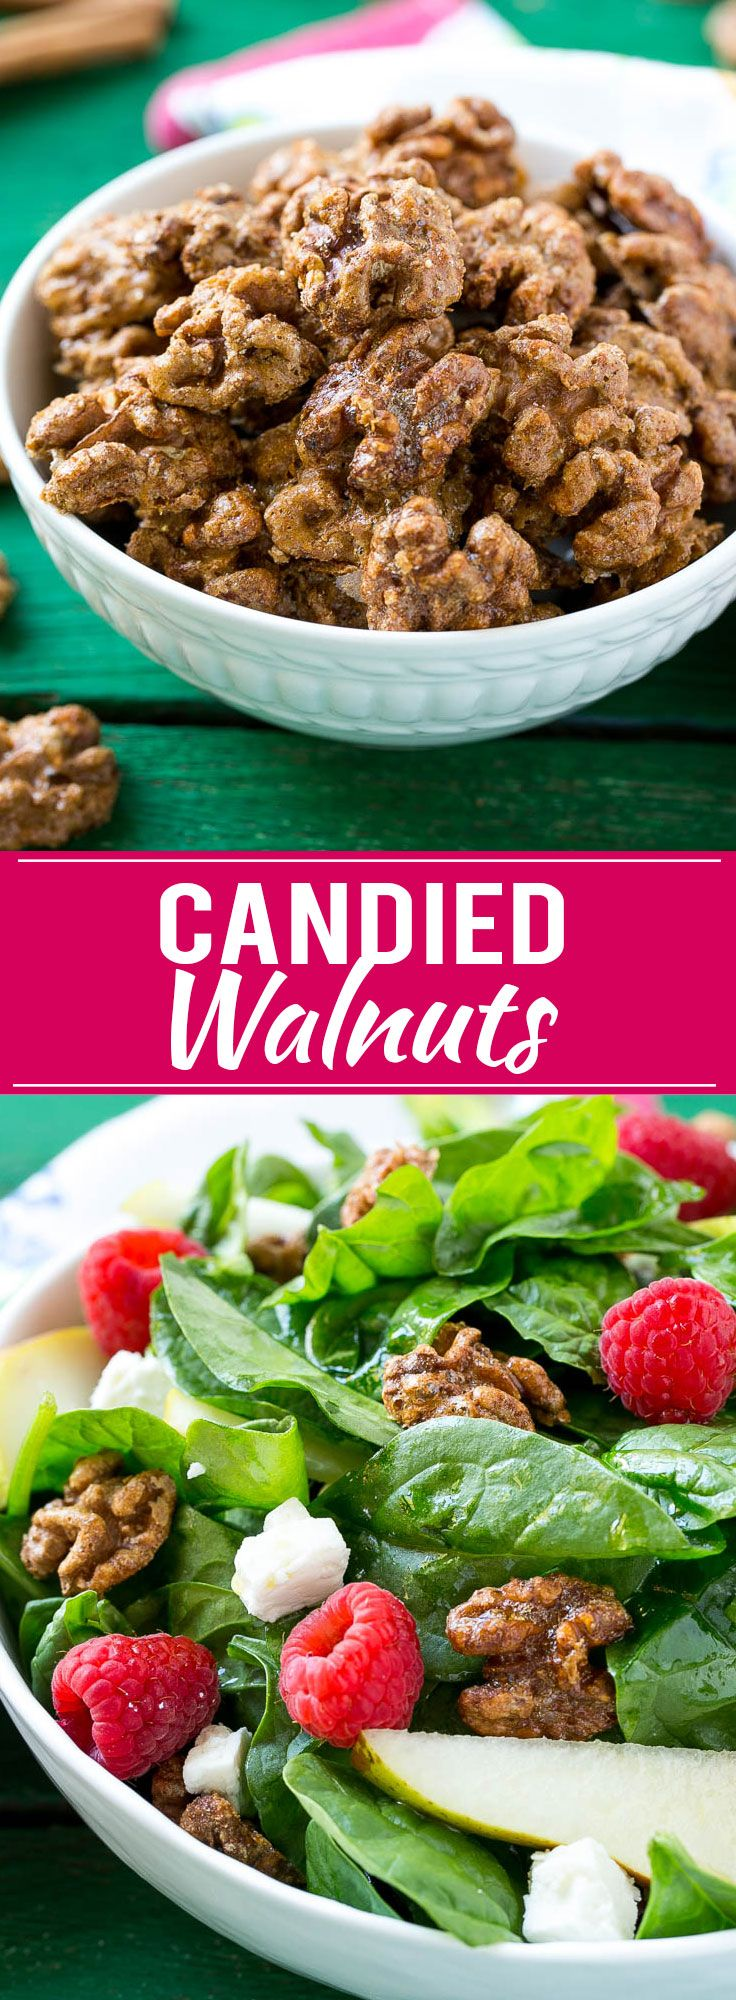 Candied Walnuts | Walnut Recipe | Cinnamon Sugar Walnuts | Candied Nuts | Glazed Walnuts